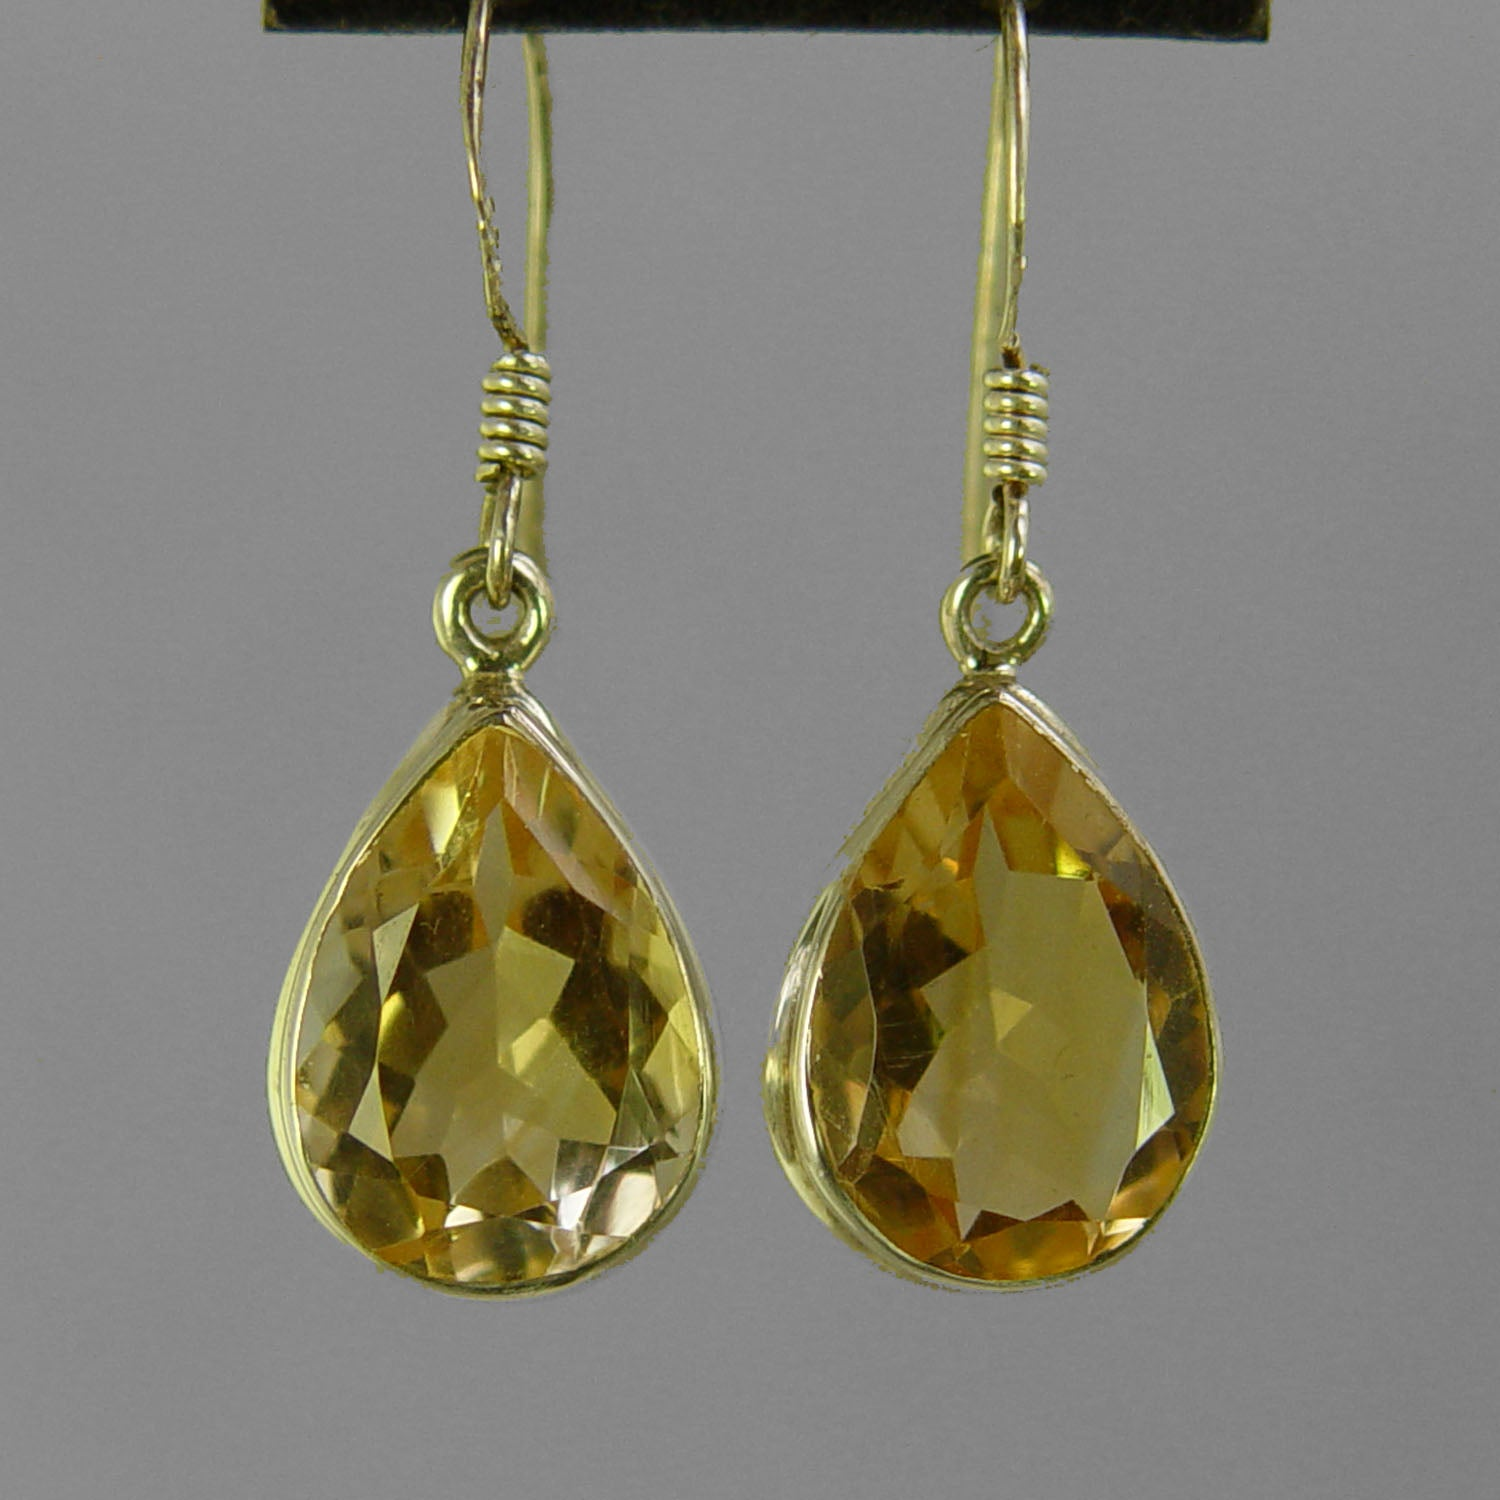 Citrine 12 ctw Faceted Pear Shape Bezel Set Earrings